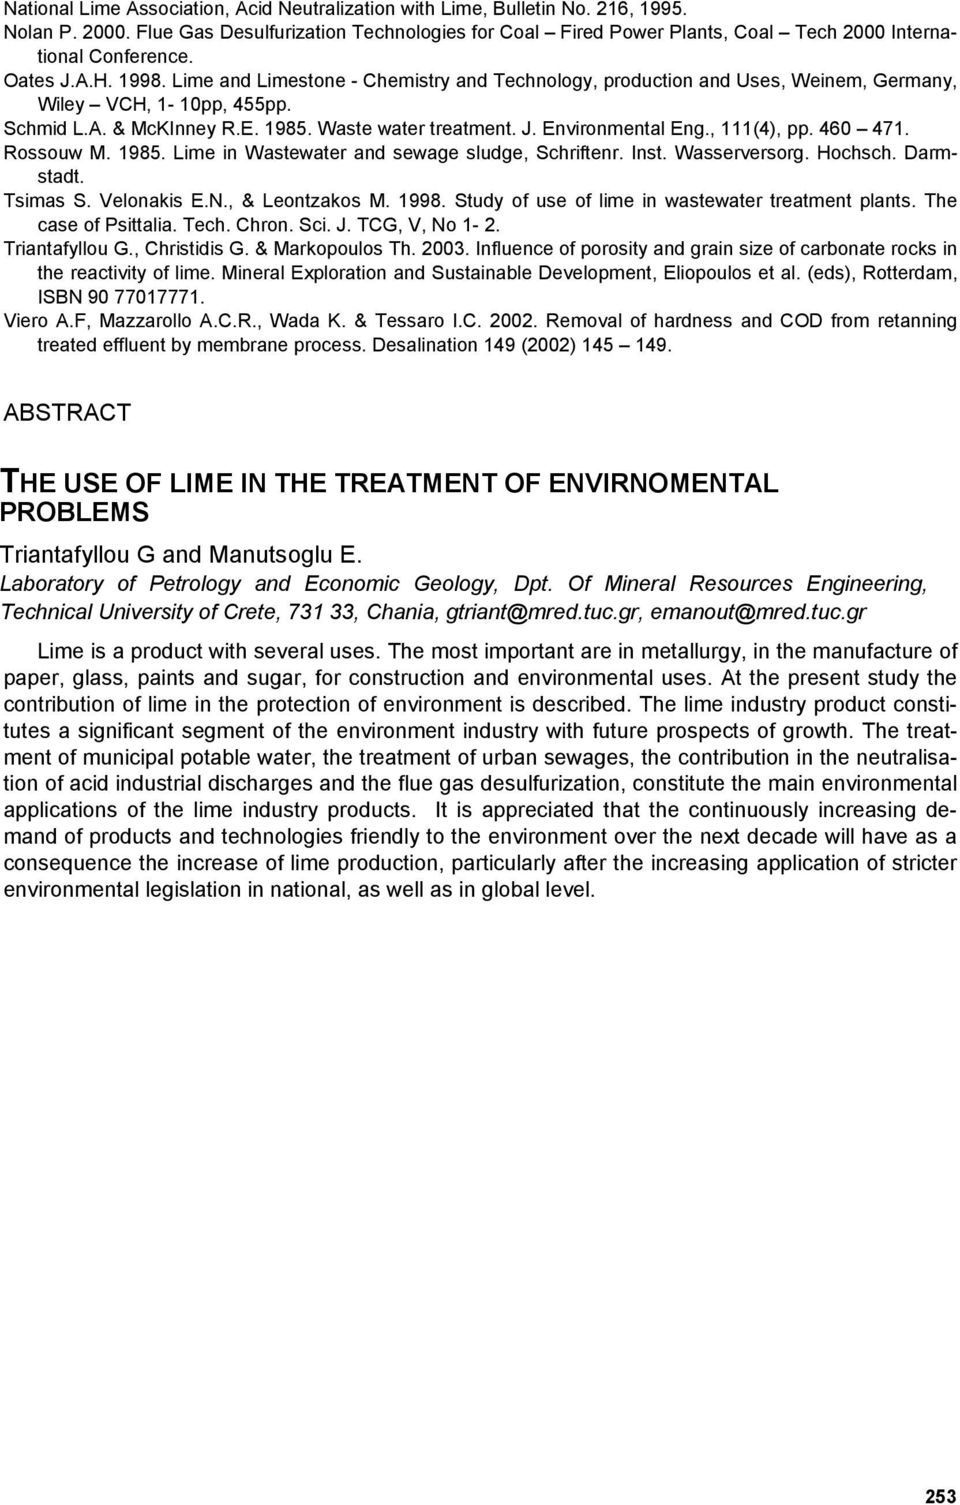 Lime and Limestone - Chemistry and Technology, production and Uses, Weinem, Germany, Wiley VCH, 1-10pp, 455pp. Schmid L.A. & McKInney R.E. 1985. Waste water treatment. J. Environmental Eng.